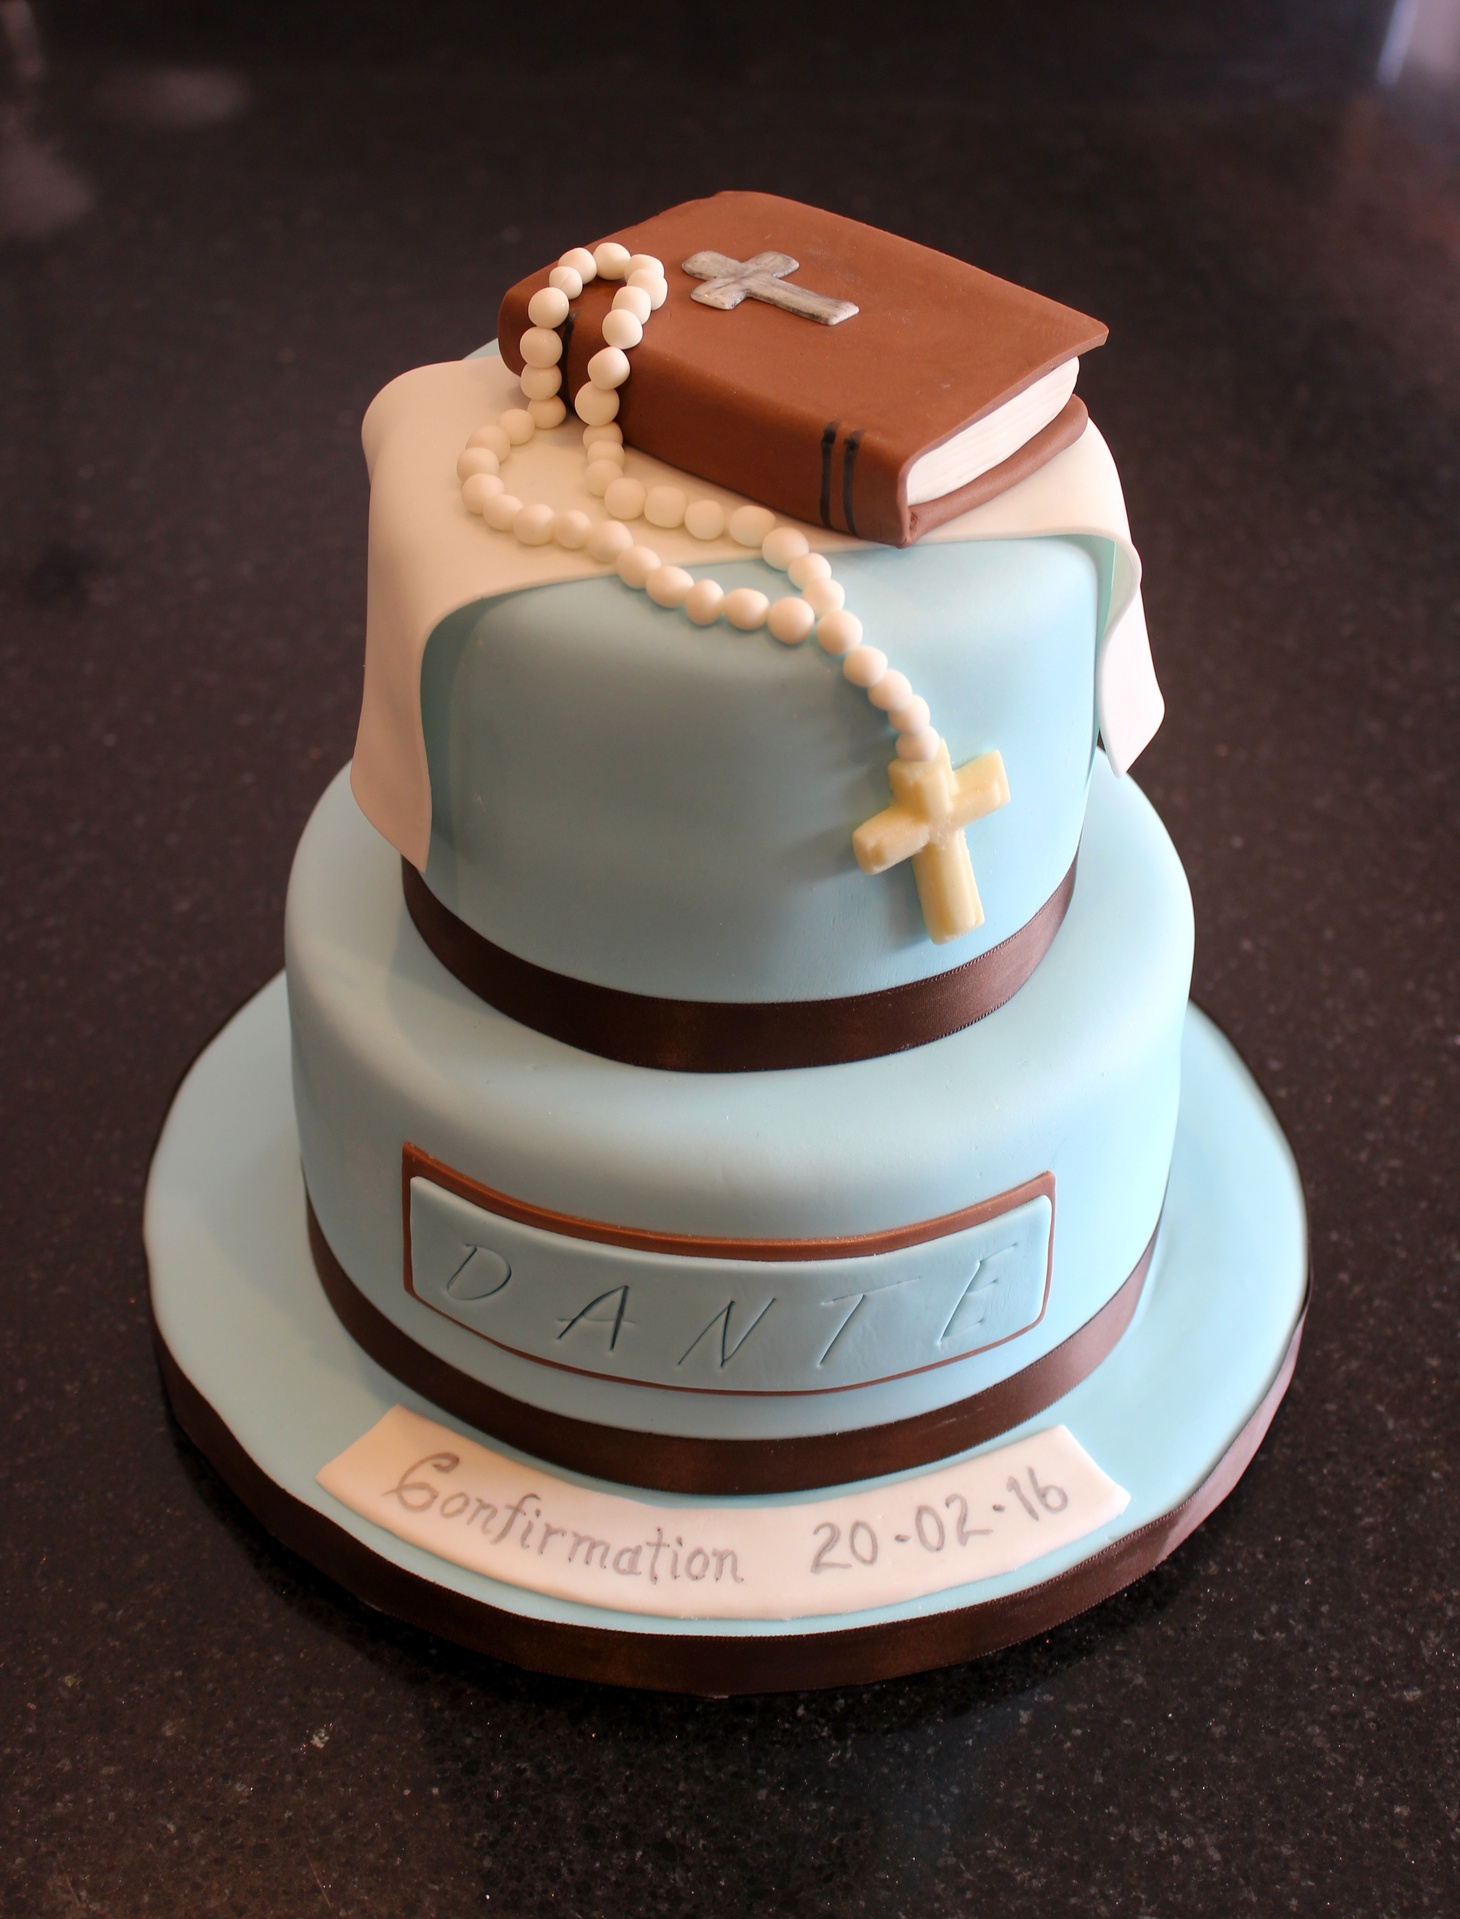 2 Tiered Confirmation Cake